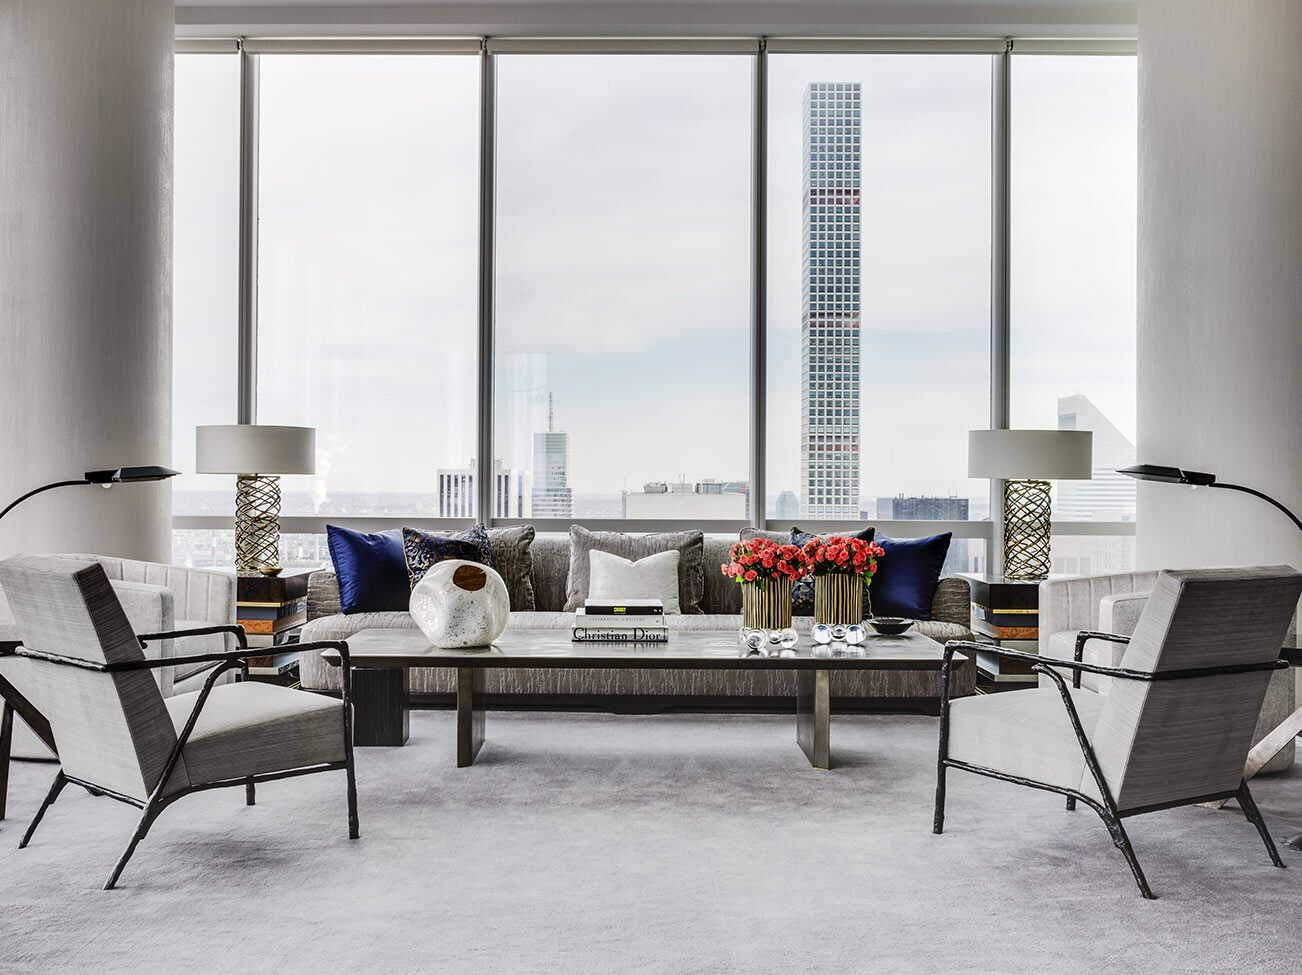 A sleek, white-painted living space with modern furnishings and massive floor to ceiling windows overlooks a cityscape.